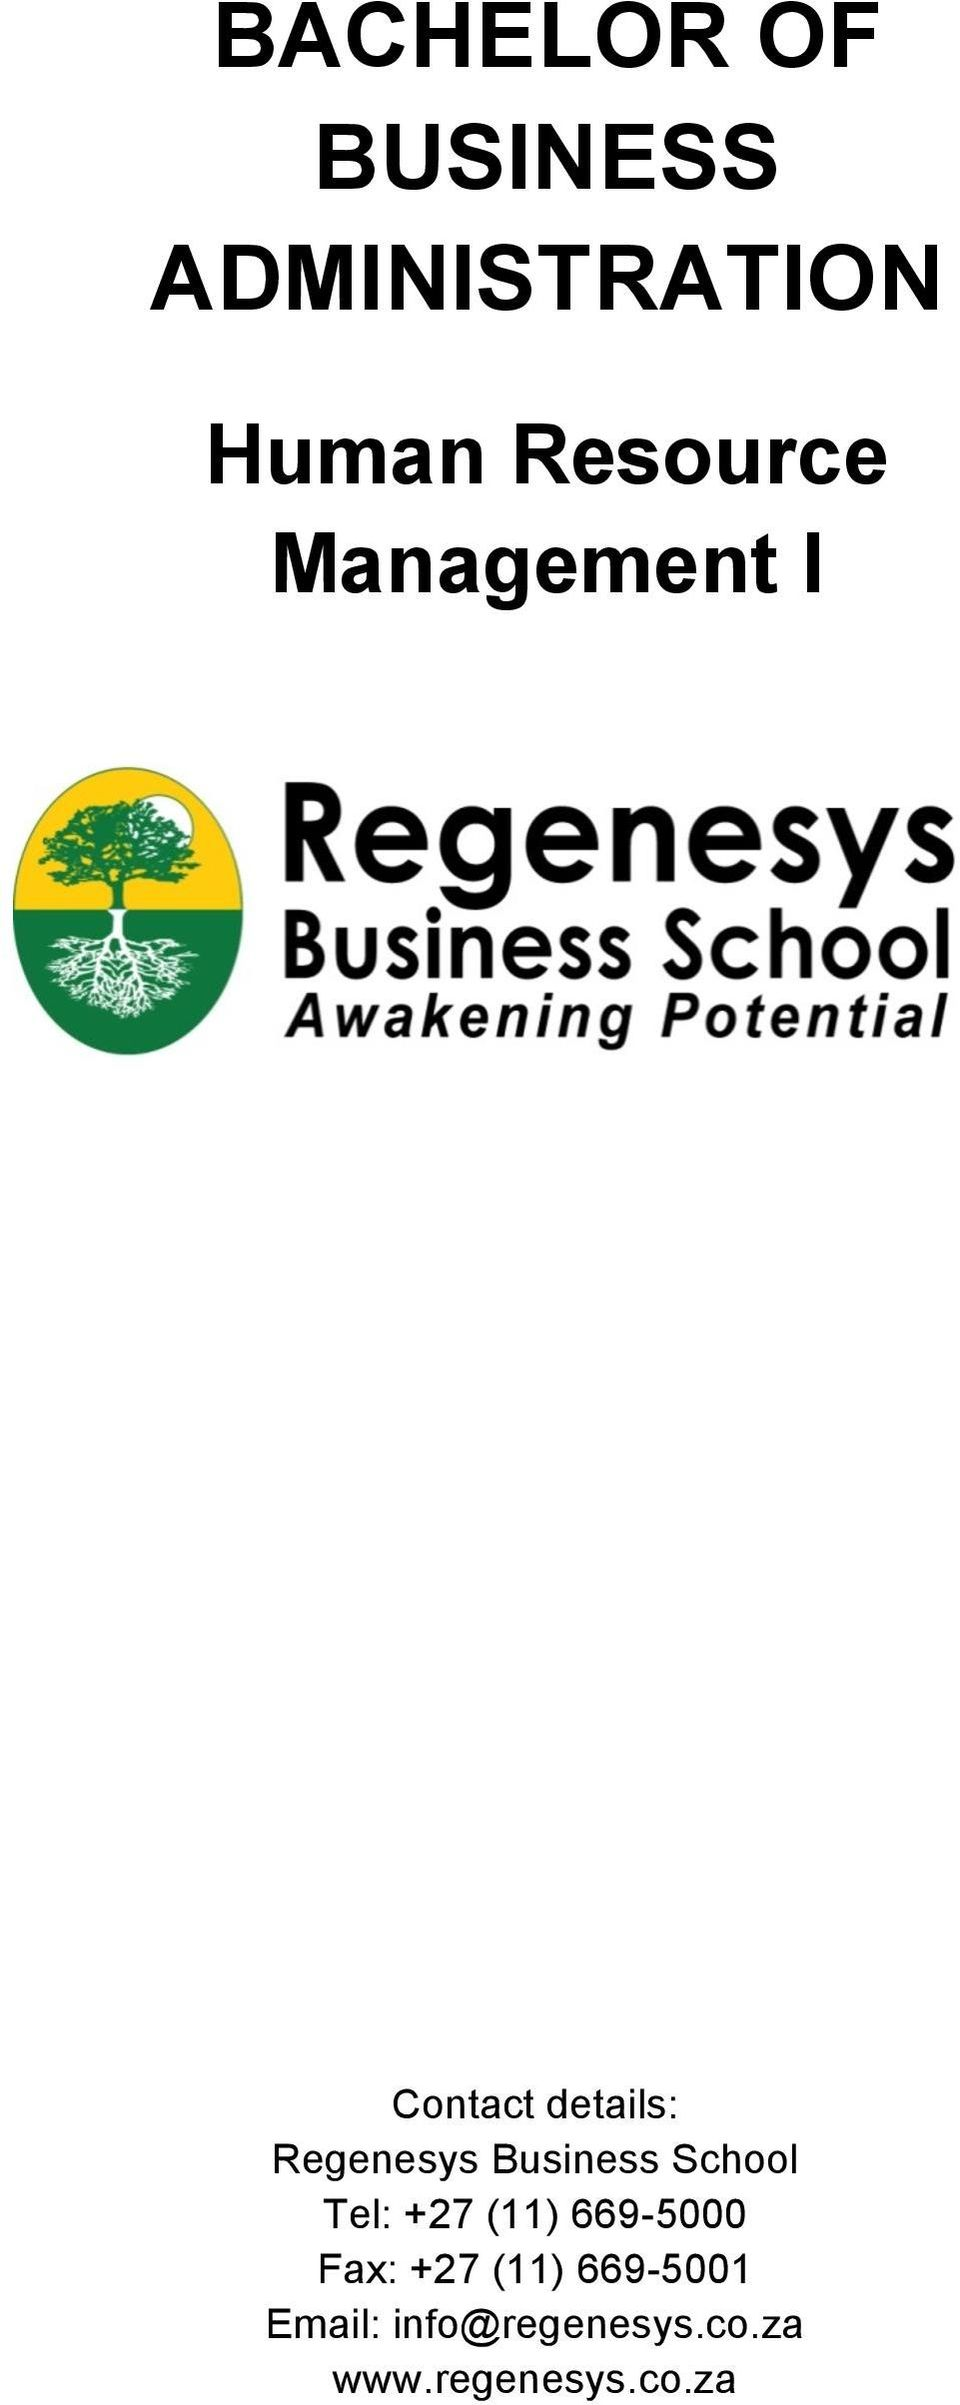 Business School Tel: +27 (11) 669-5000 Fax: +27